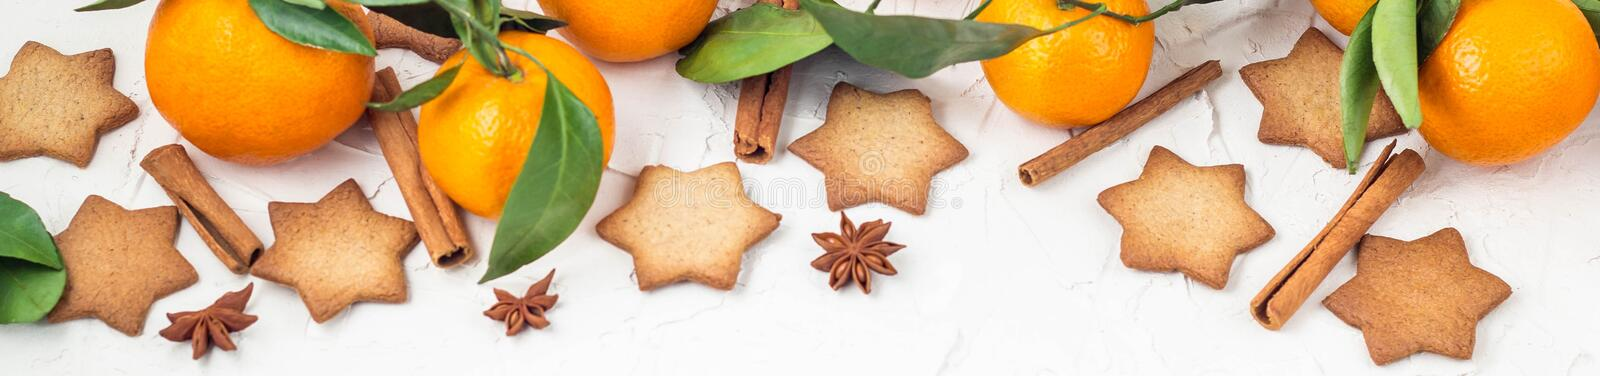 Border of Christmas star cookies with spices and mandarin on white background with copyspace. Top view, gingerbread, food, cinnamon, holiday, decoration royalty free stock image